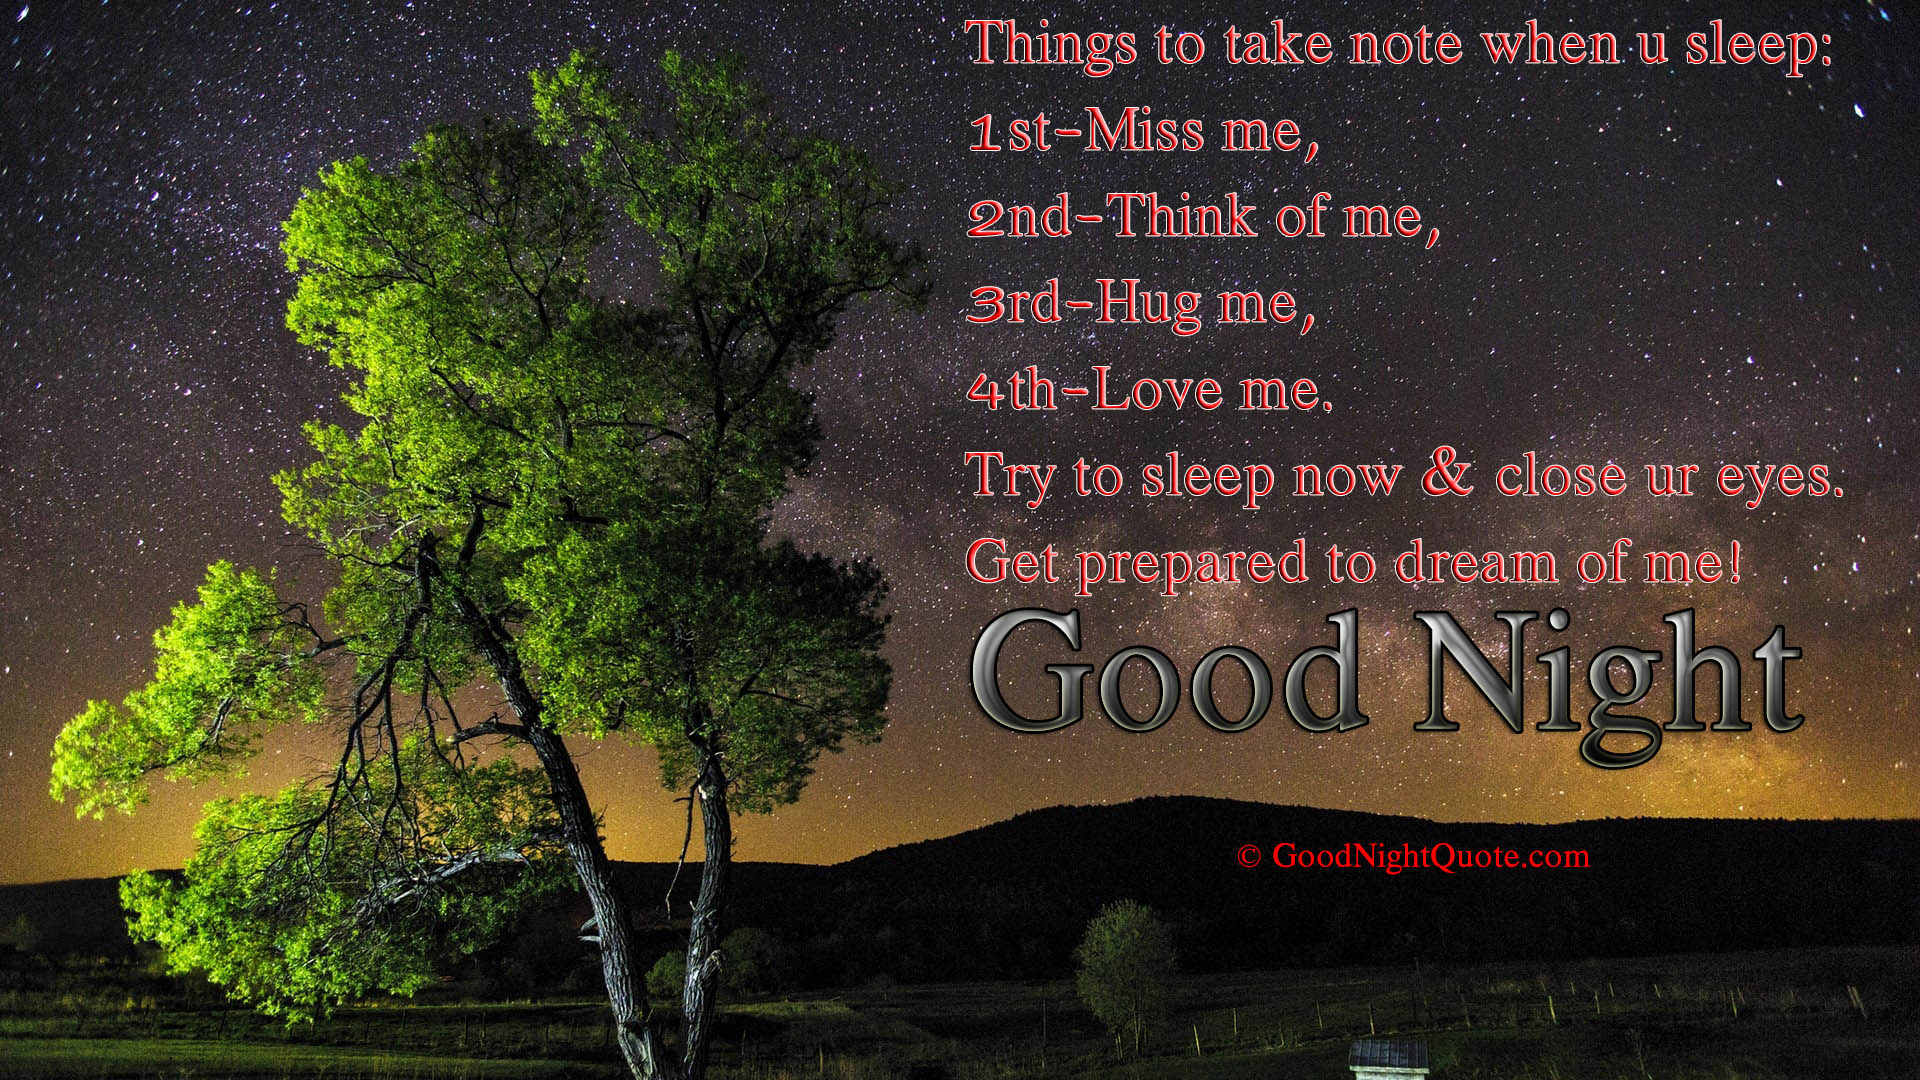 Good Night - Romantic things to take note when you sleep